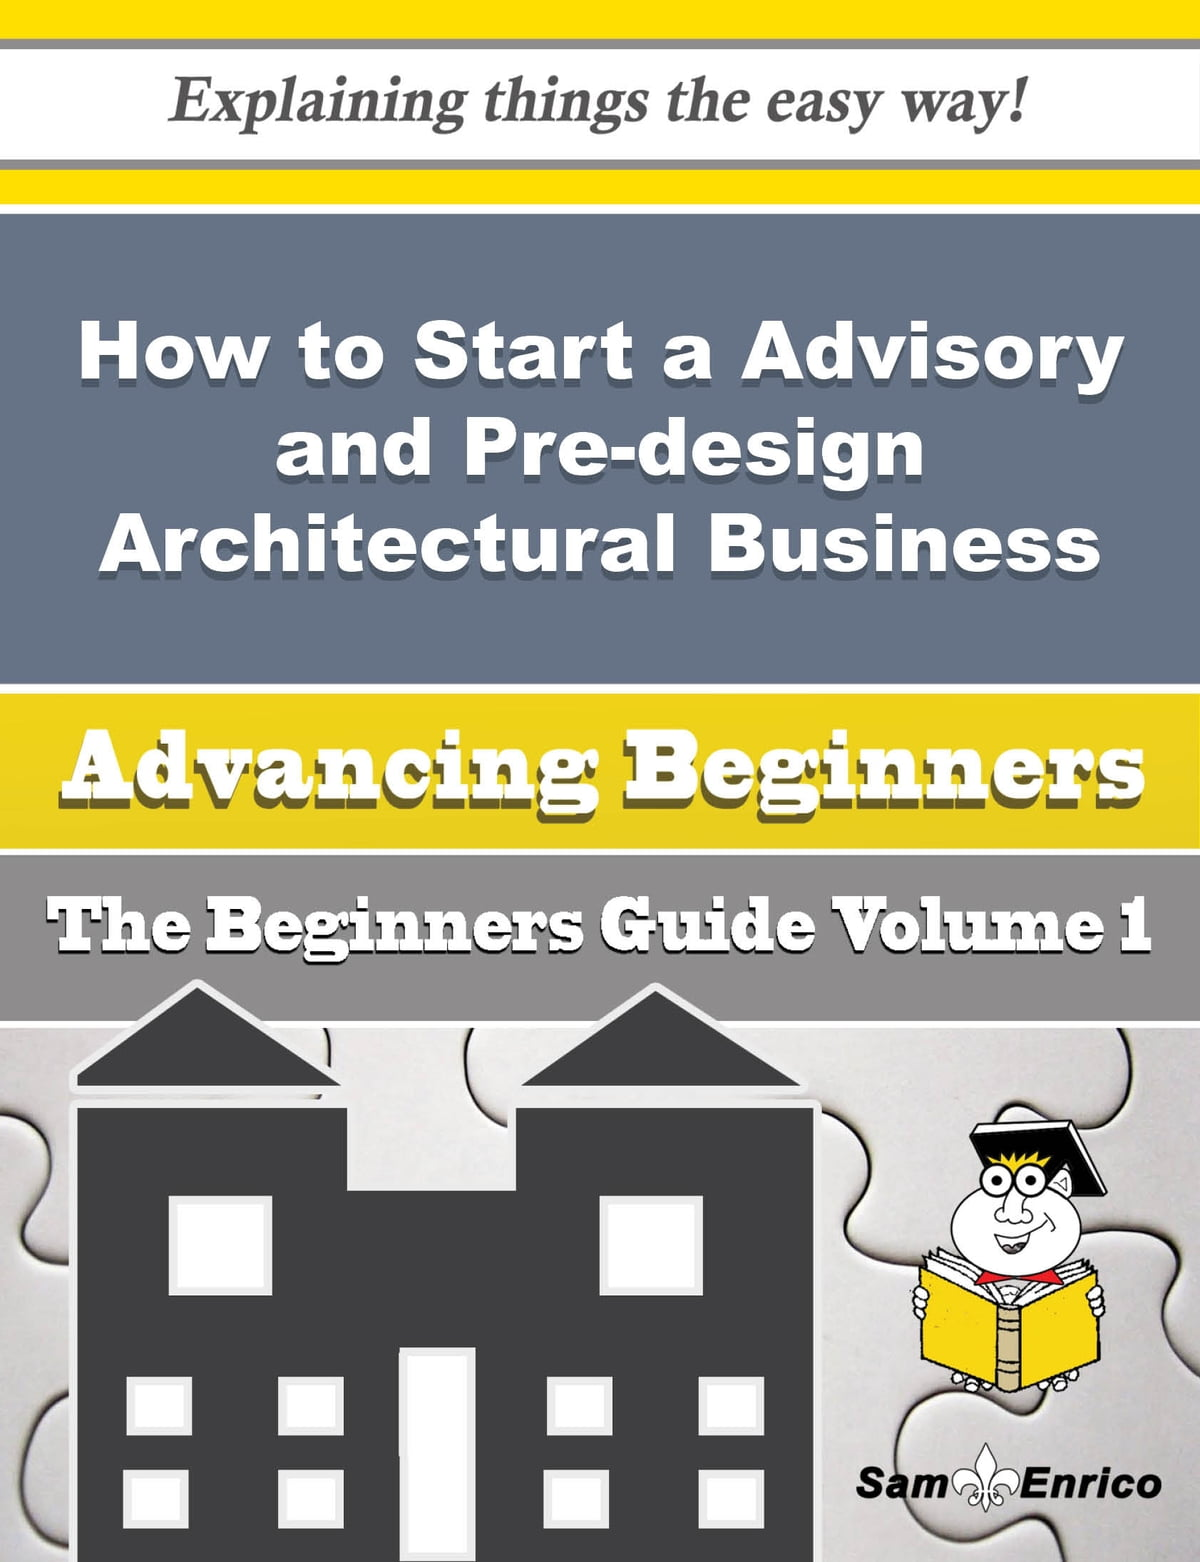 How To Start A Advisory And Predesign Architectural Business - Architectural business